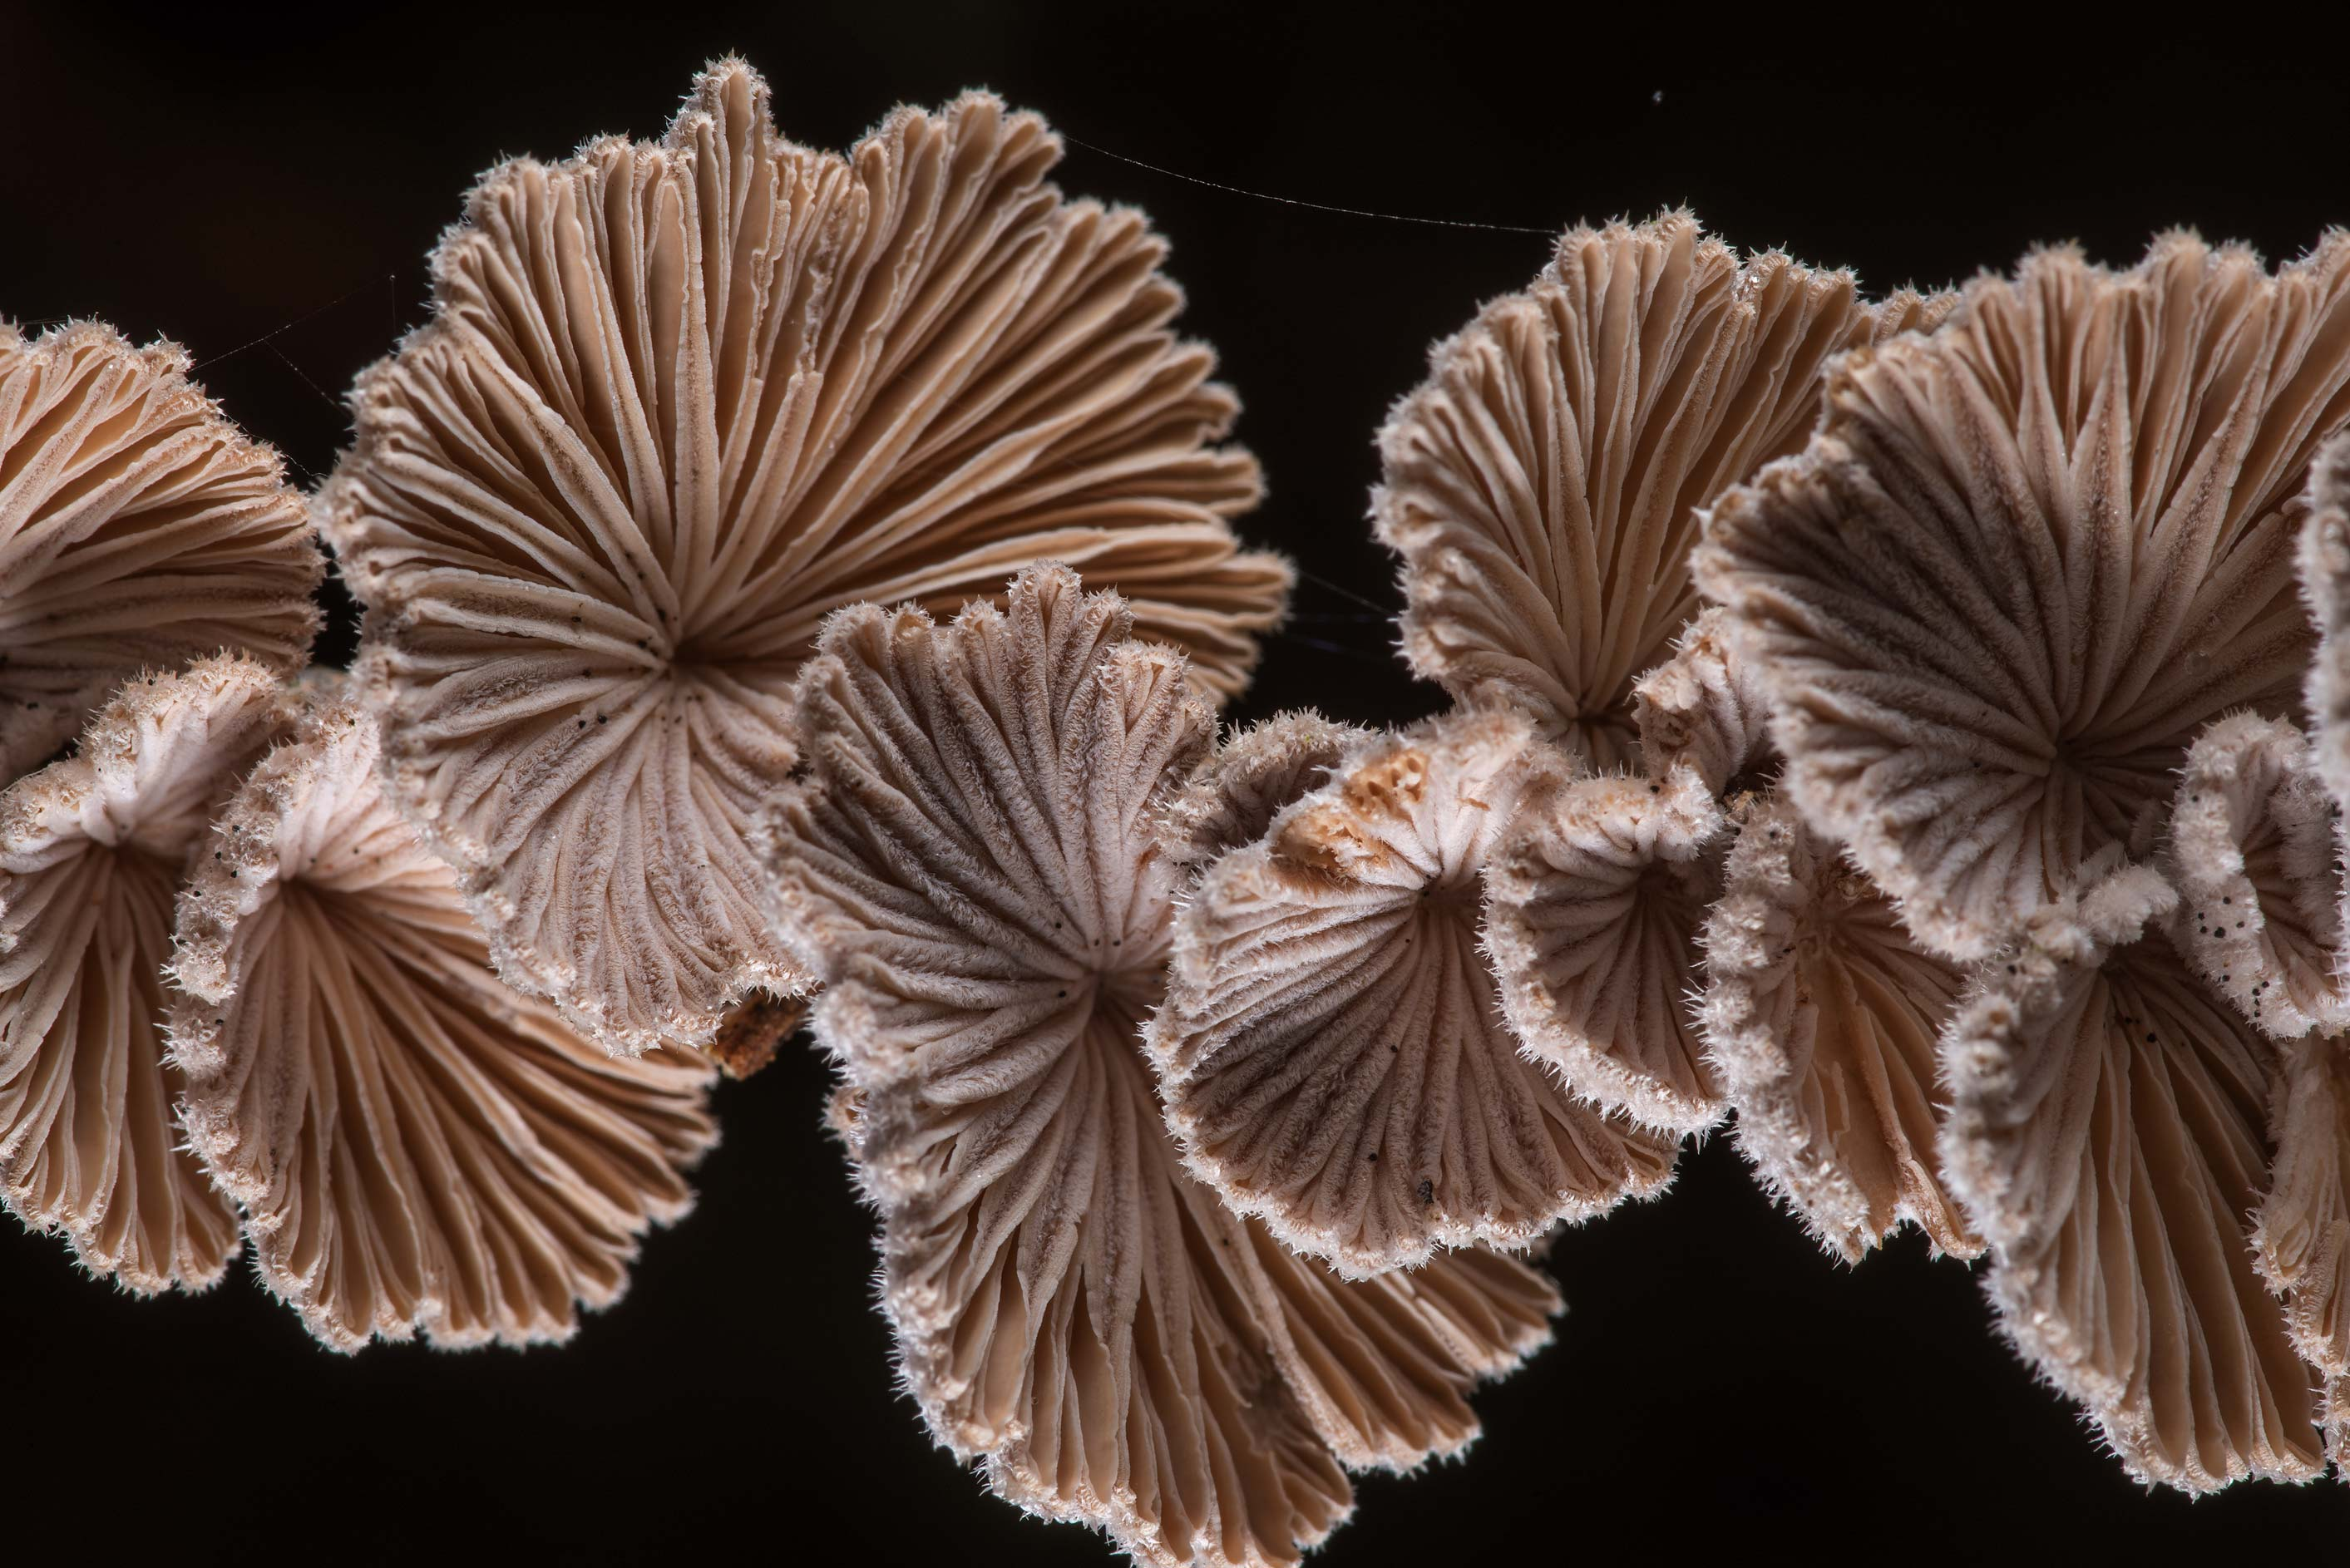 Splitgill mushrooms (Schizophyllum commune) on a...Creek Park. College Station, Texas